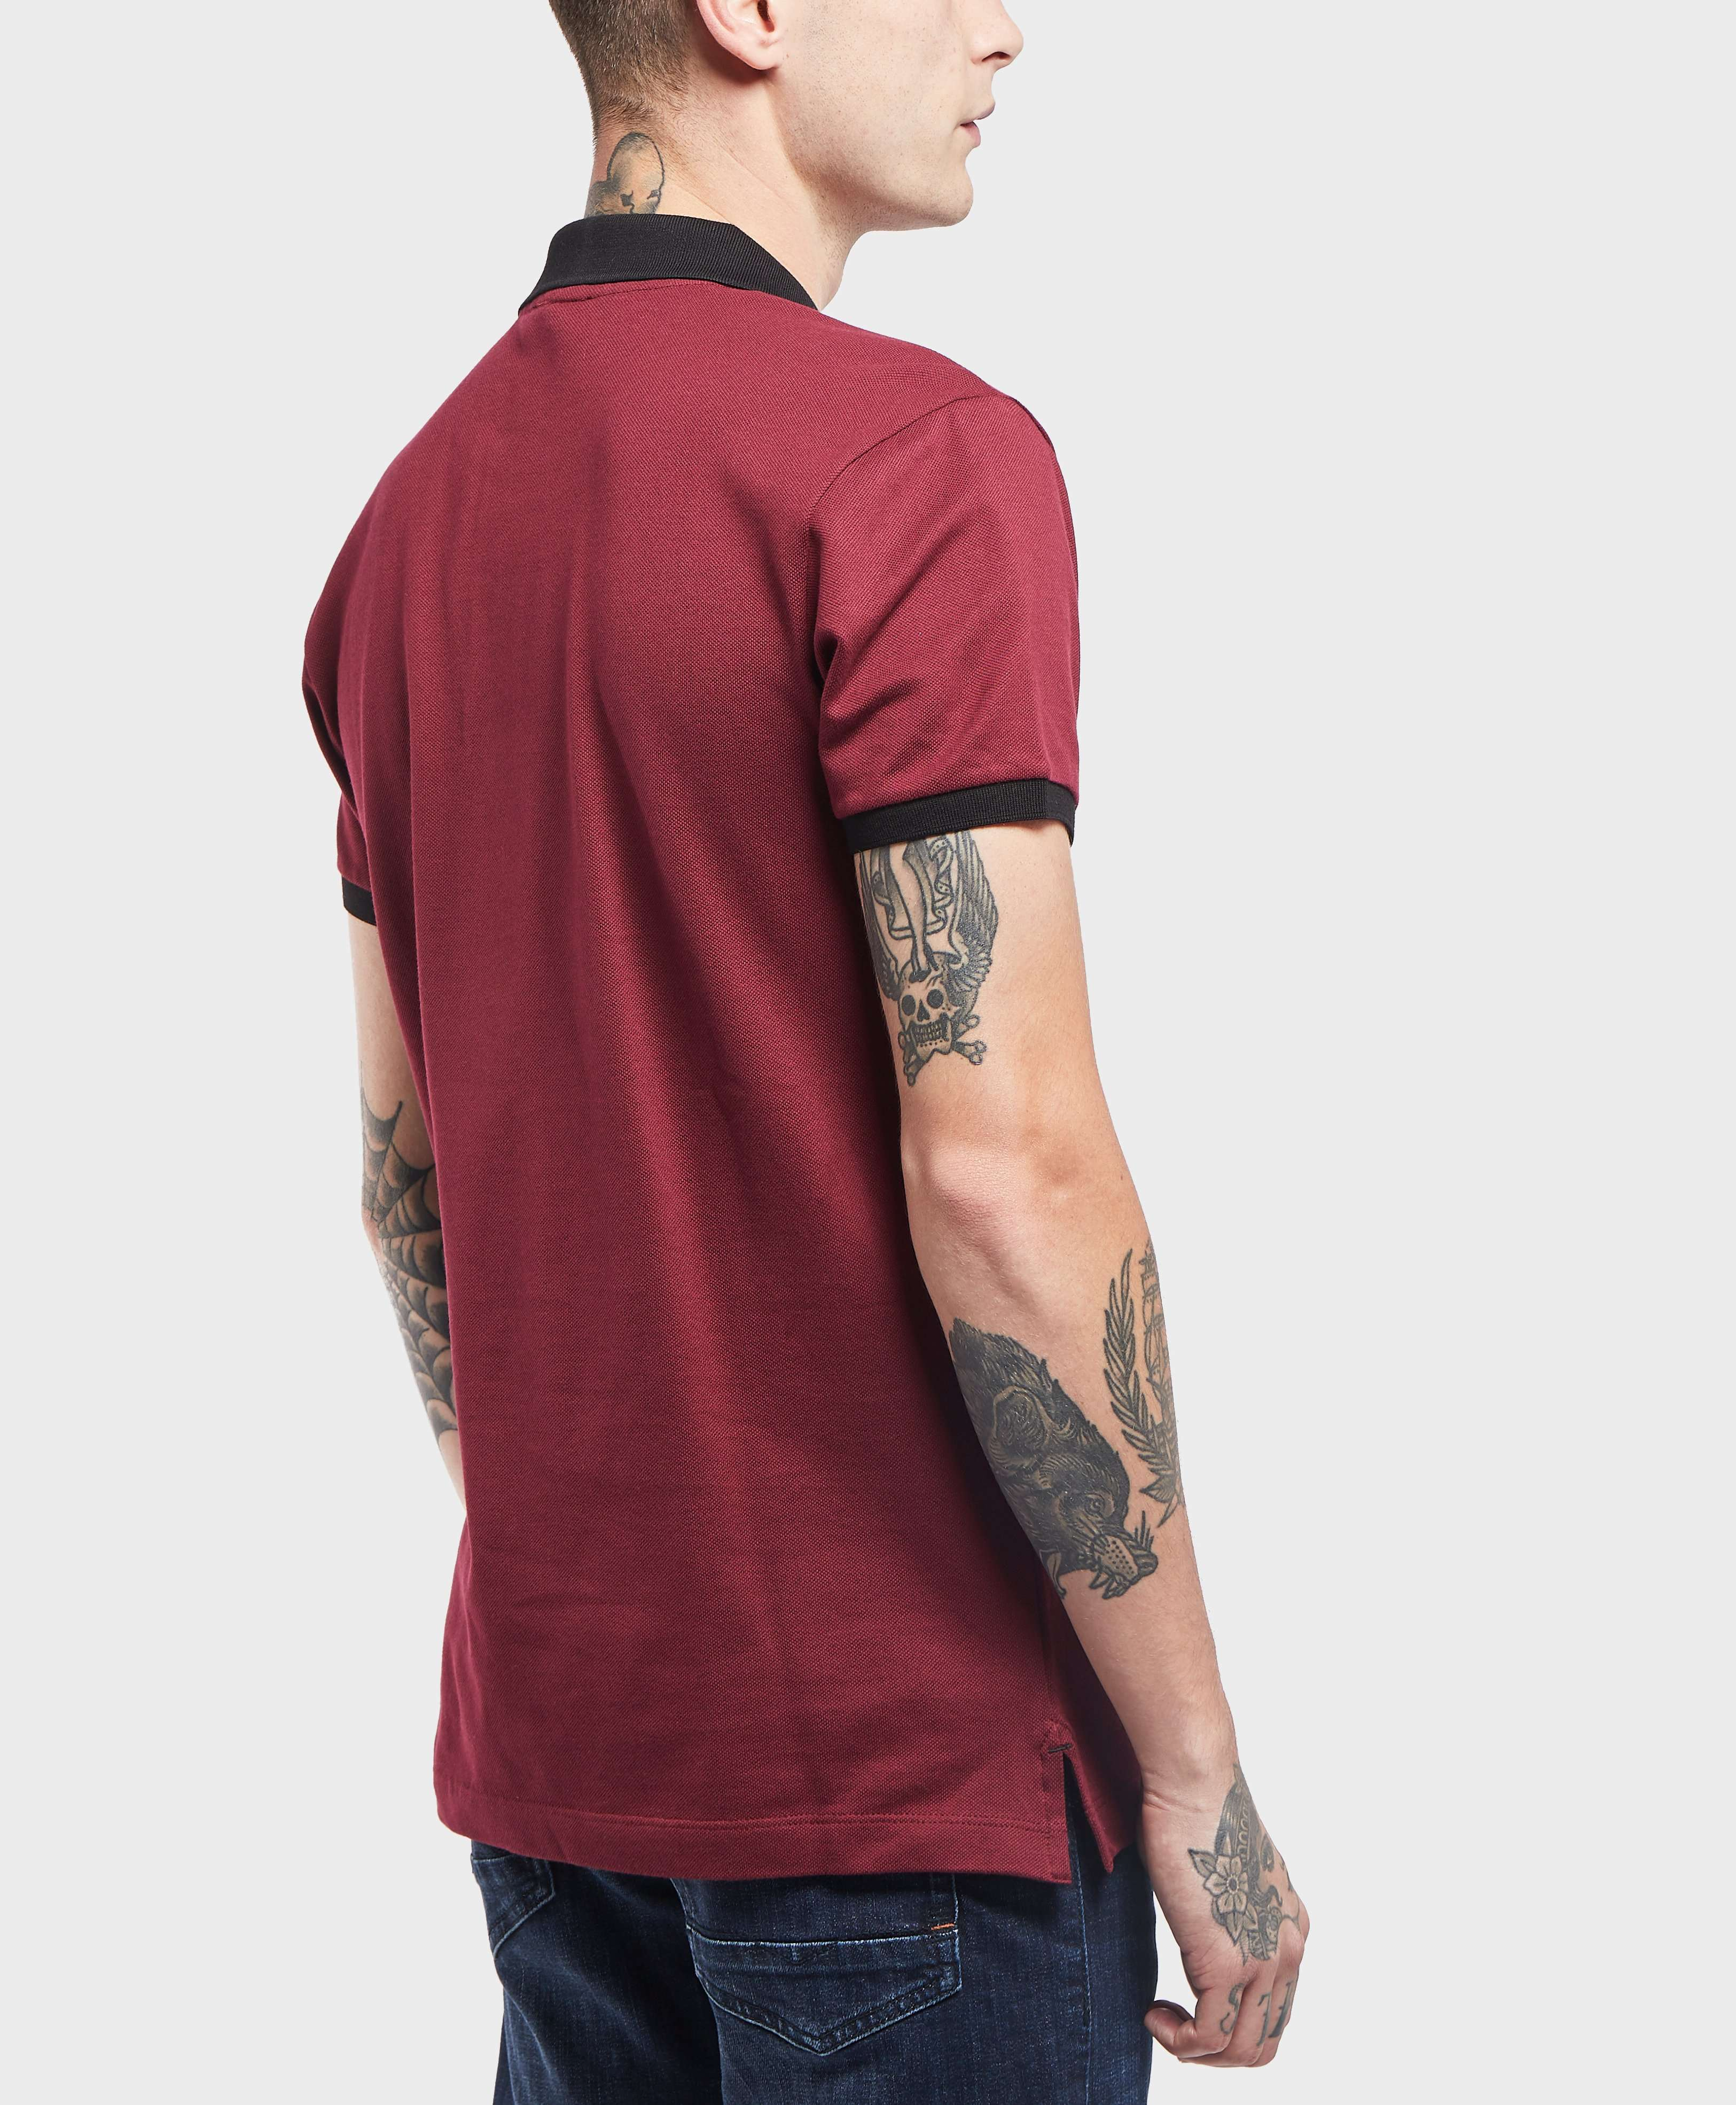 Paul and Shark Contrast Short Sleeve Polo Shirt - Exclusive